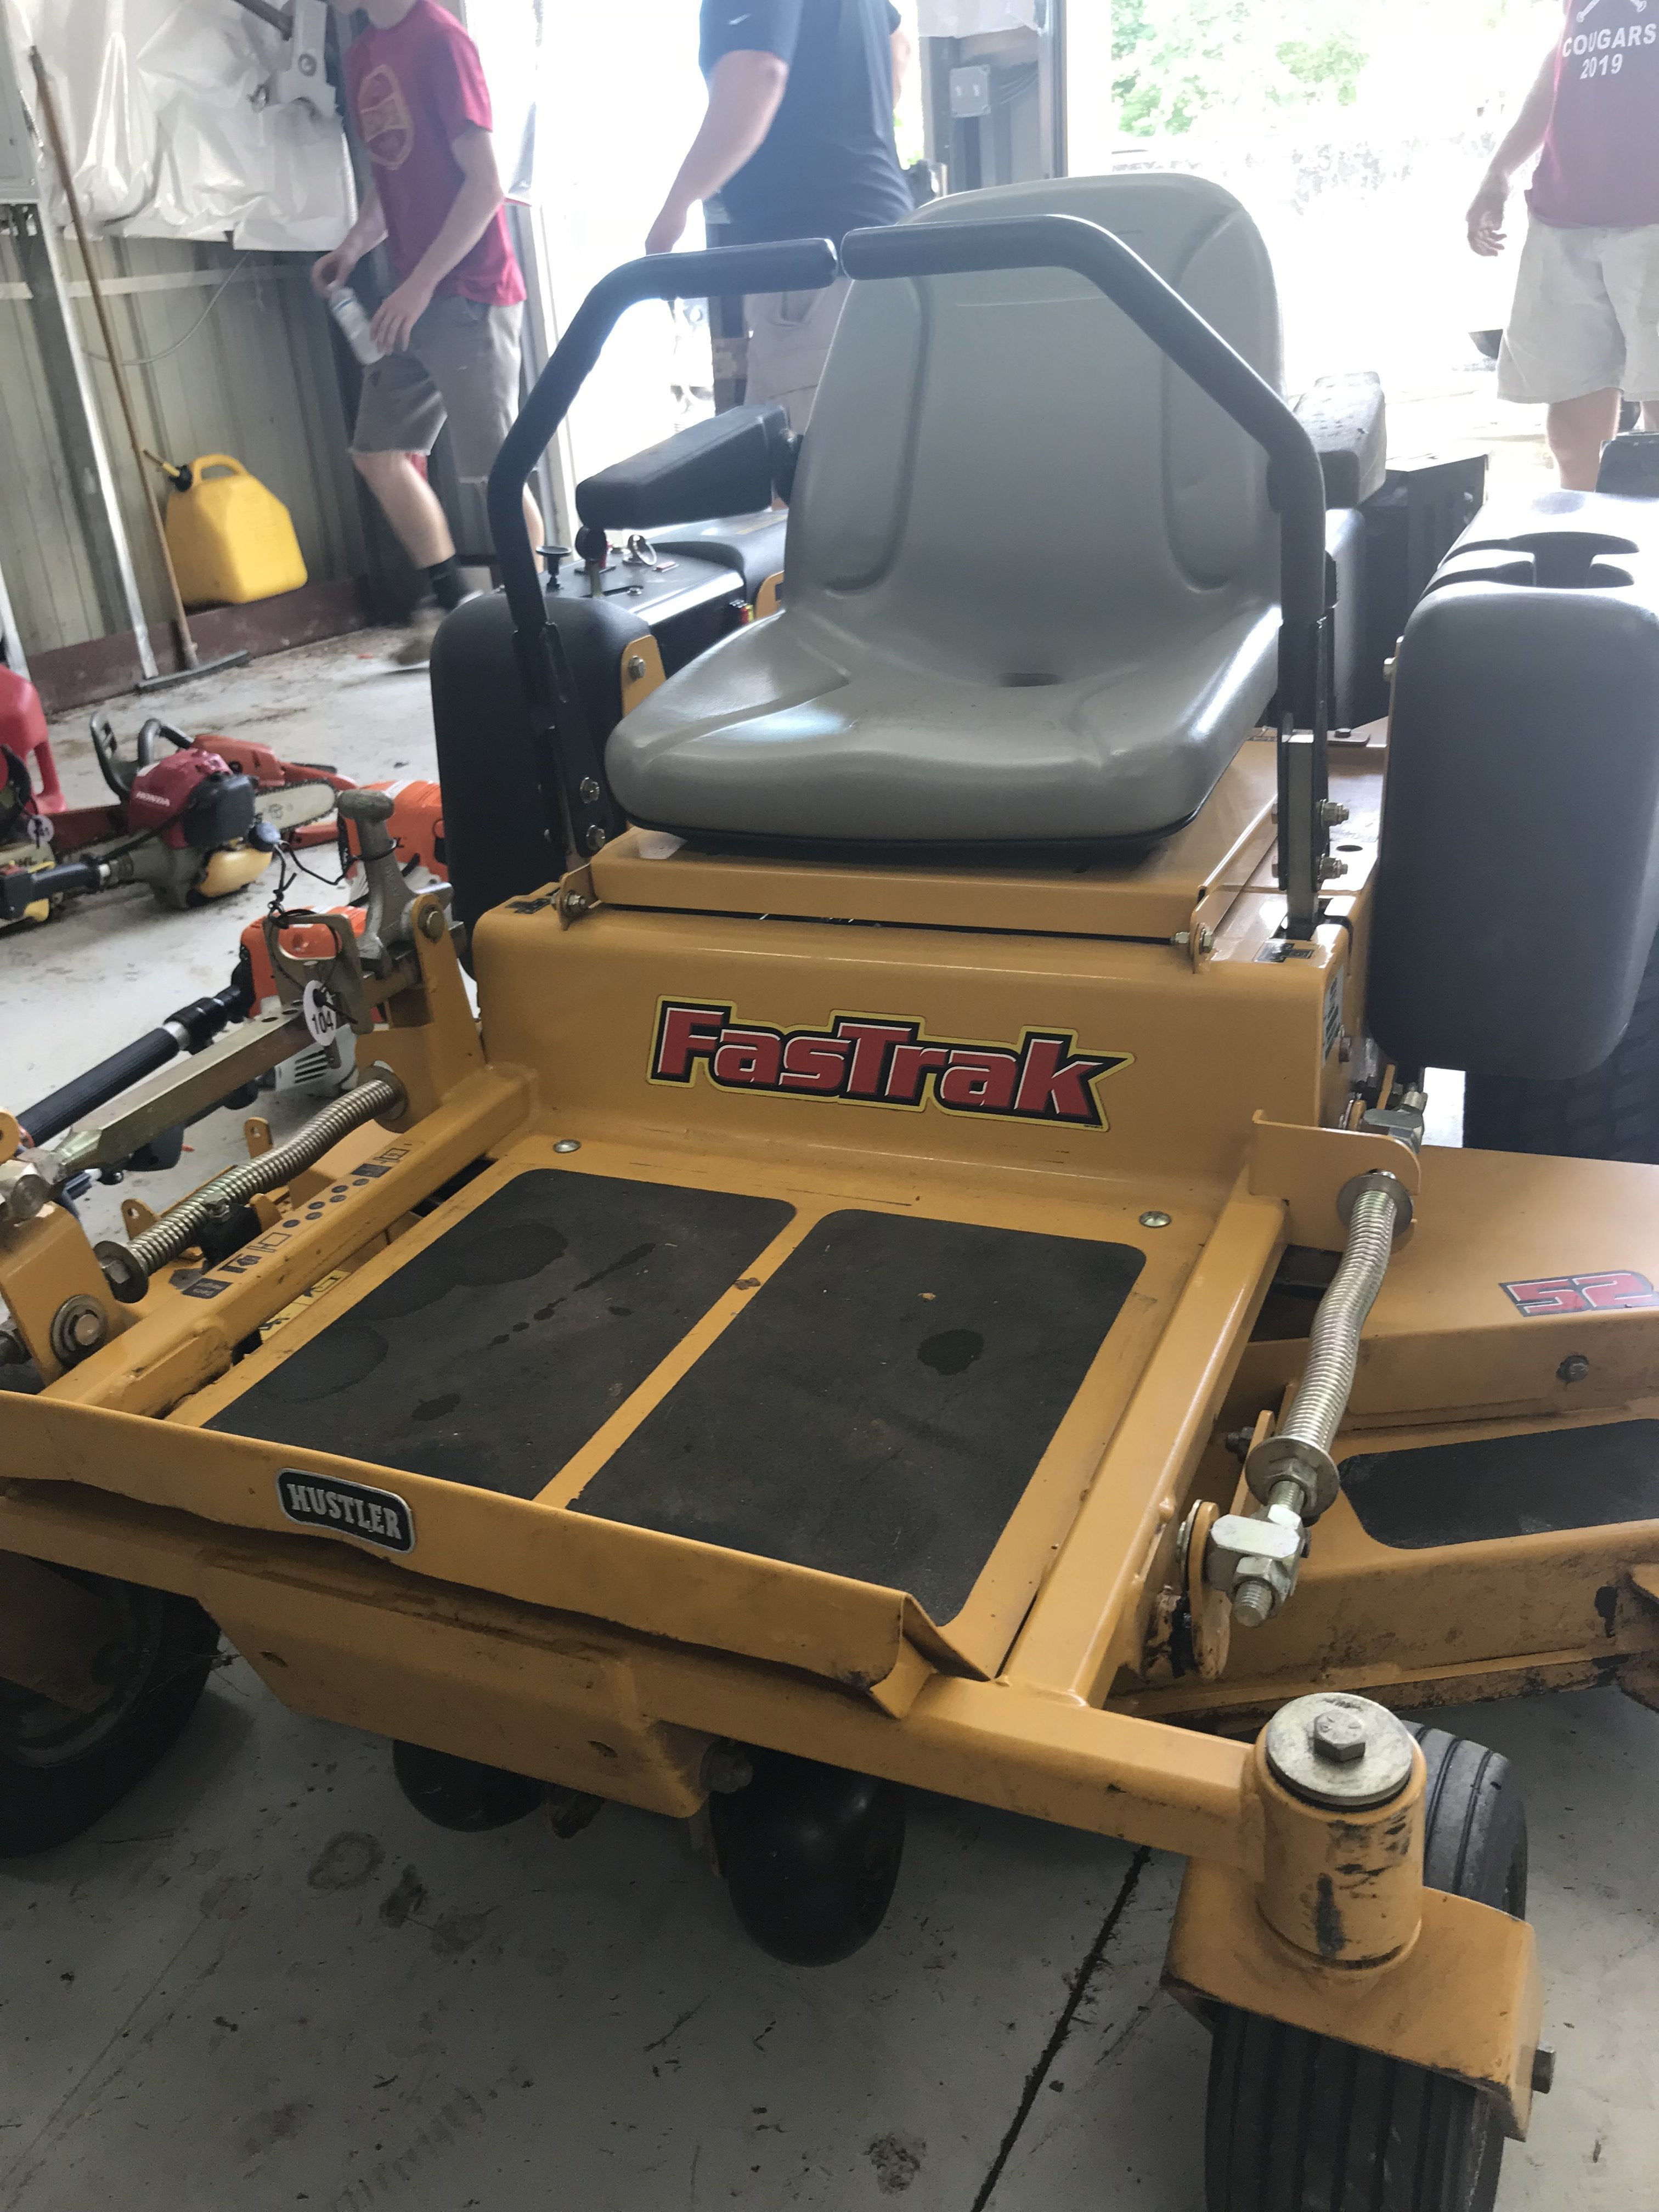 Used Hustler Fastrak Mower